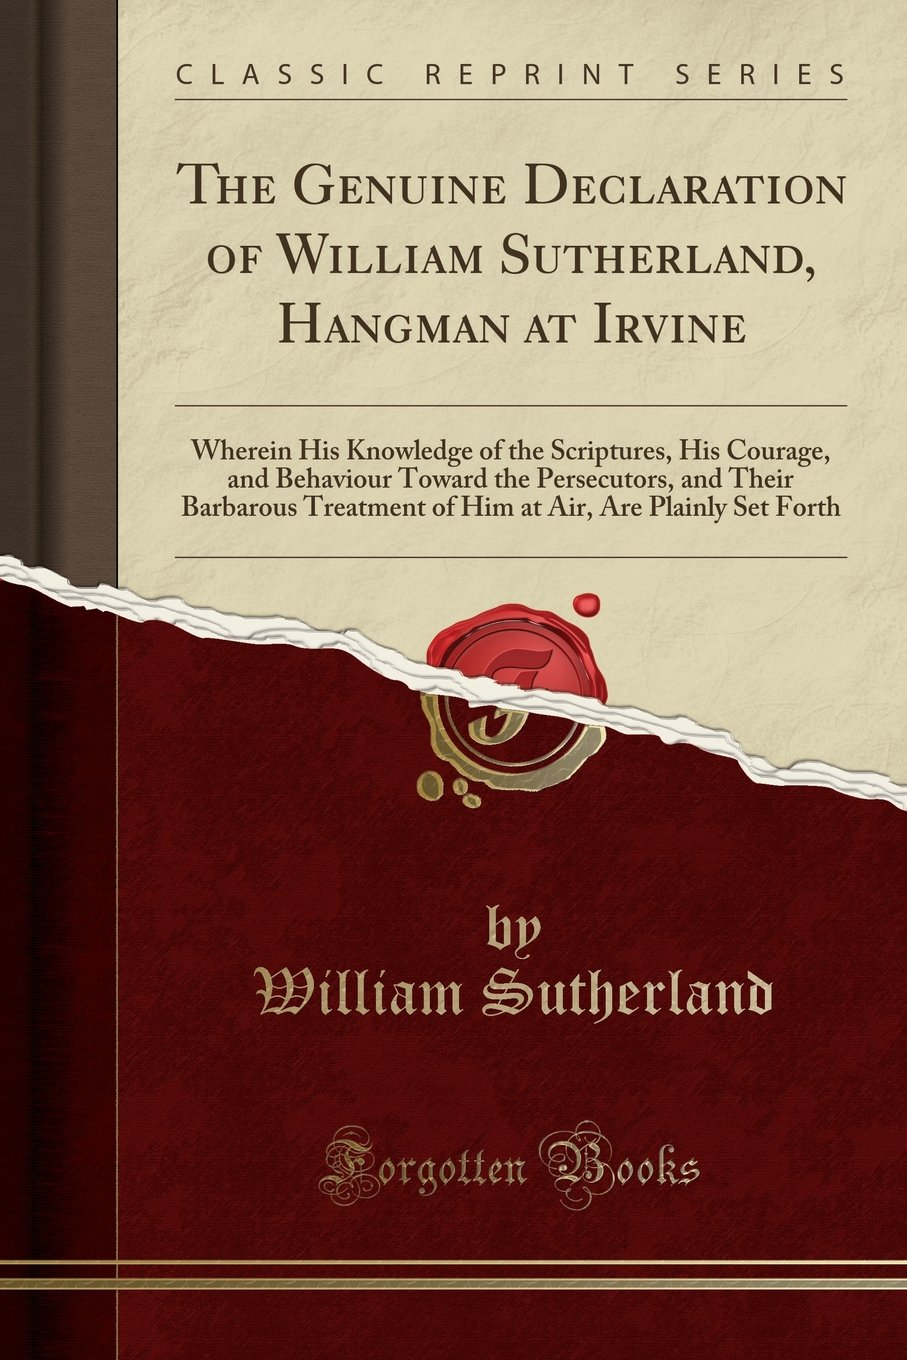 Download The Genuine Declaration of William Sutherland, Hangman at Irvine: Wherein His Knowledge of the Scriptures, His Courage, and Behaviour Toward the ... Air, Are Plainly Set Forth (Classic Reprint) ebook